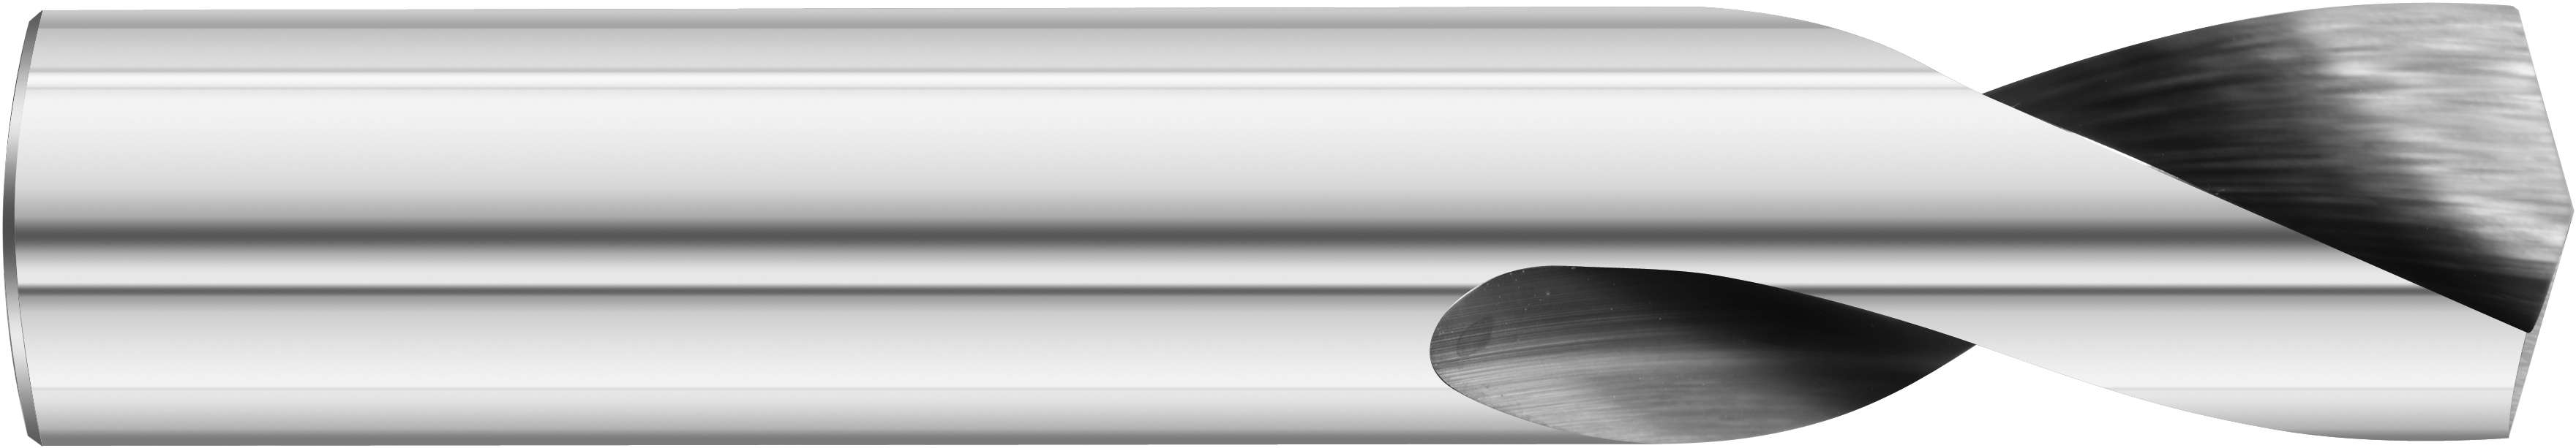 3/16 Solid Carbide Nc Spotting Dril 5xd Length Cam Relieved Se – 15748